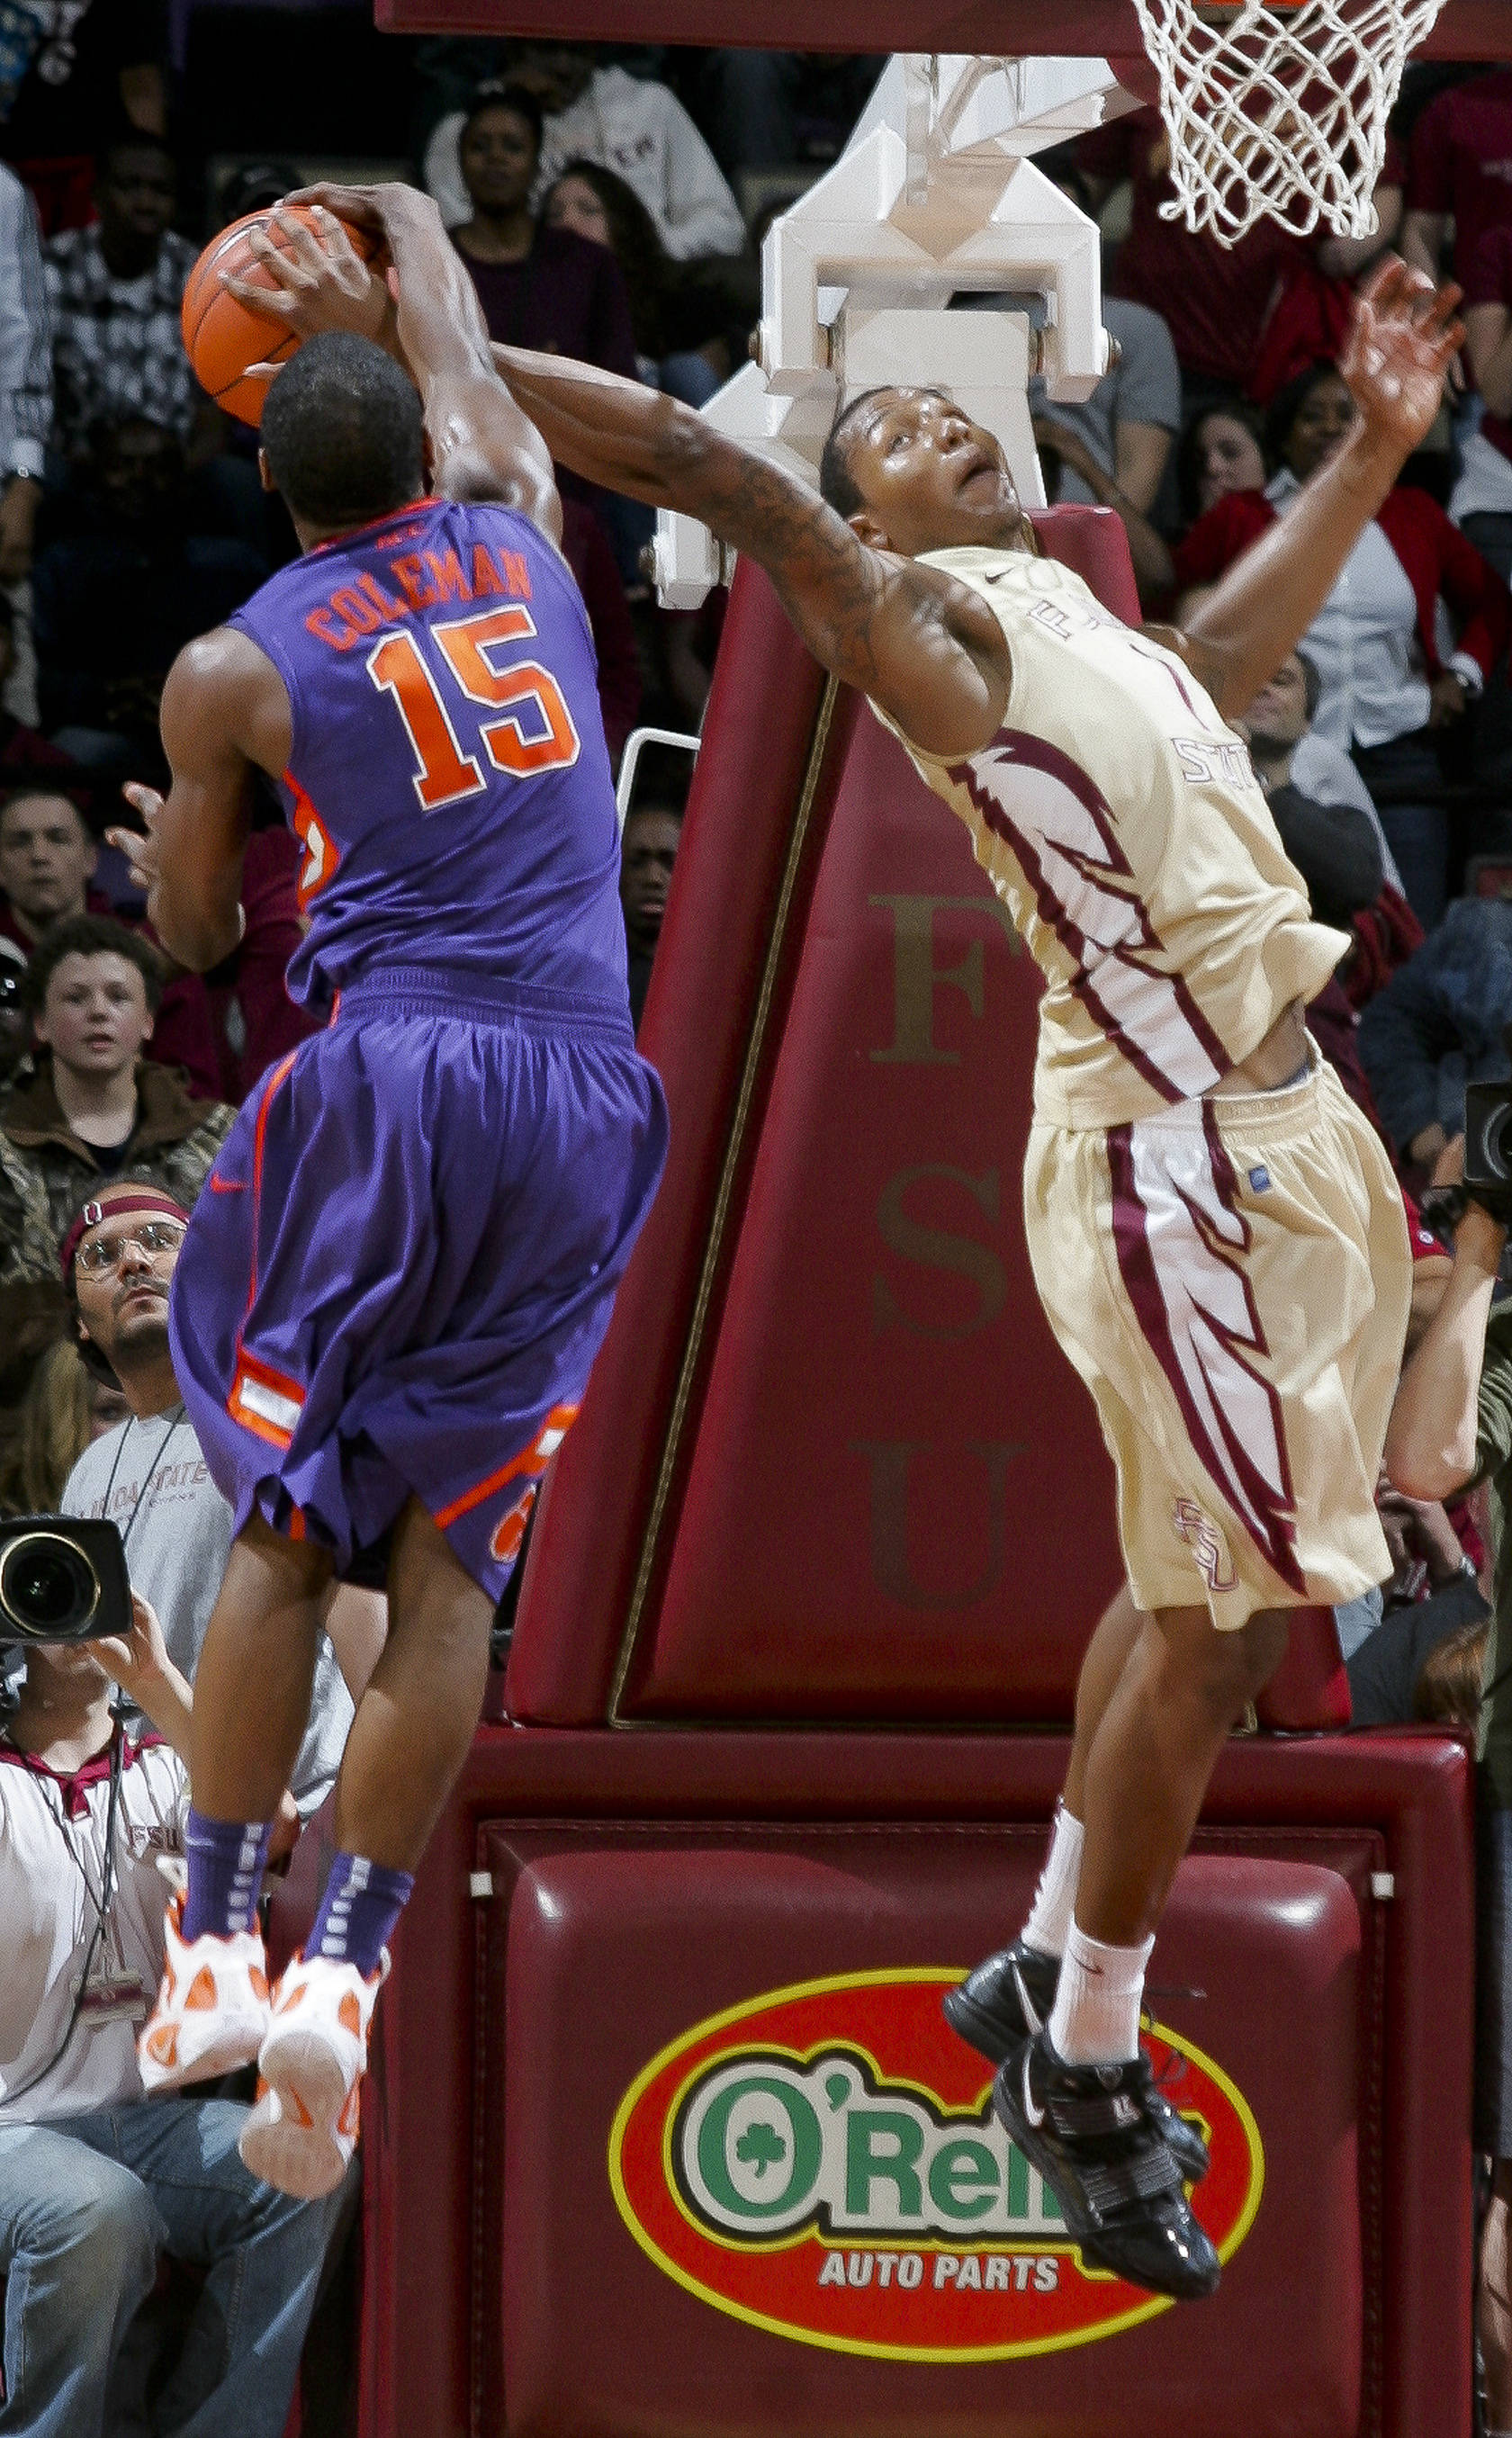 Clemson's Devin Coleman (15) attempts to strip Florida State's Xavier Gibson (1) of a rebound during the second half. (AP Photo/Phil Sears)